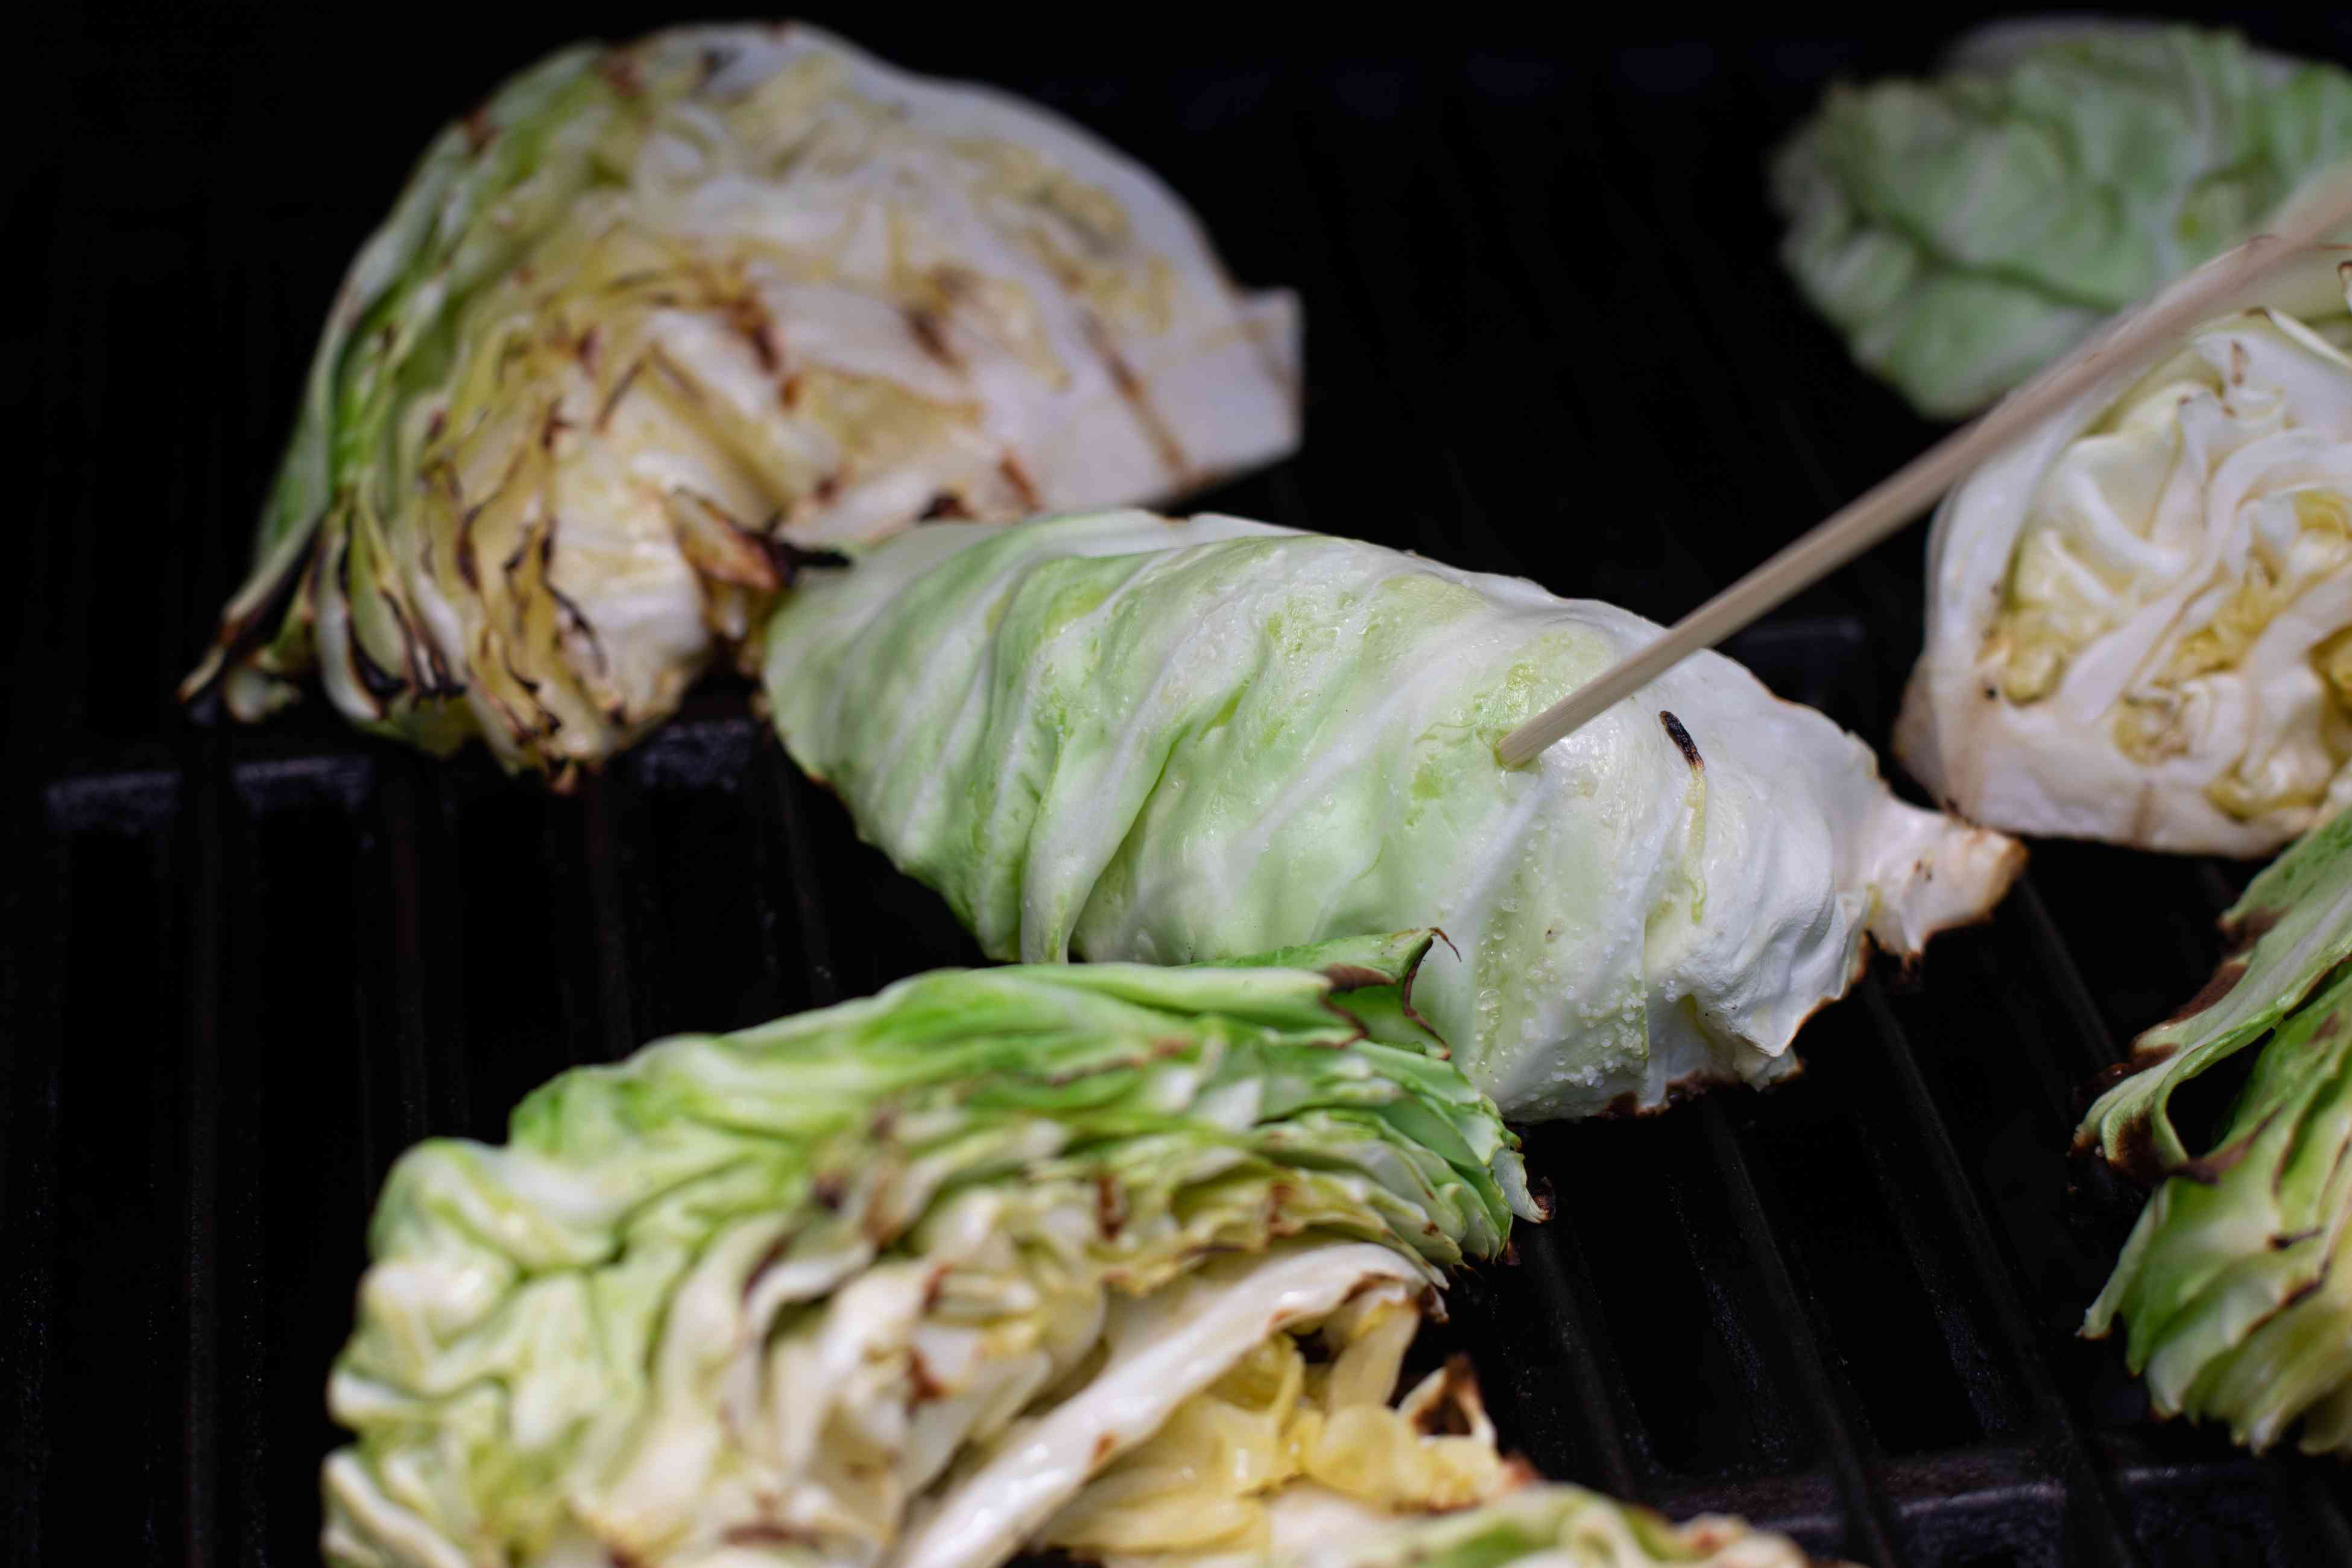 Checking for doneness for grilled cabbage with peanut satay sauce on the grill.